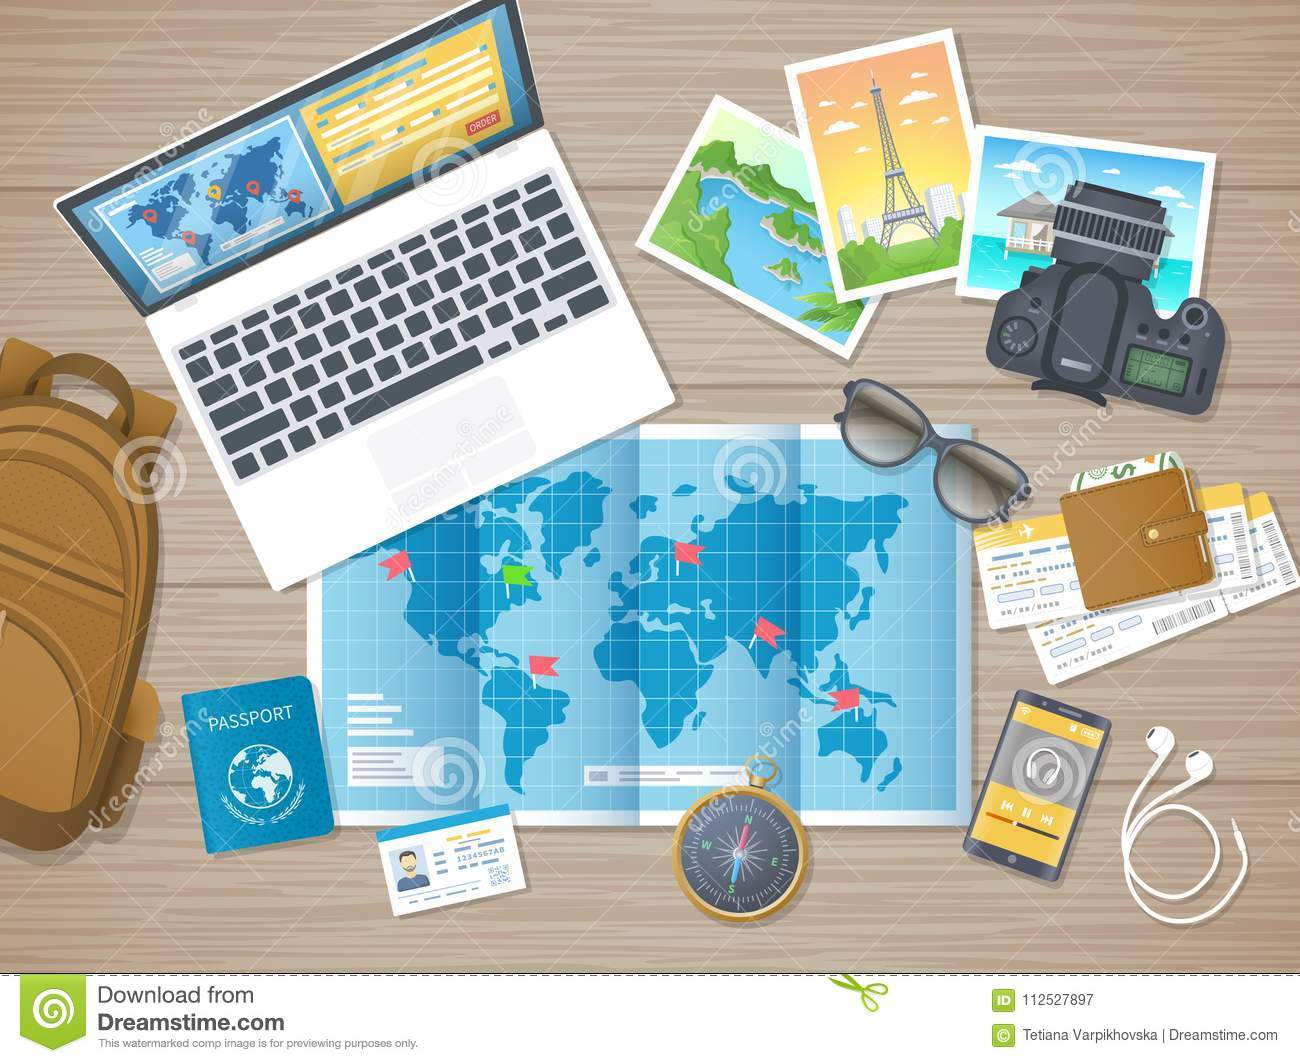 Preparing for vacation travel journey travel planning packing travel planning packing check list booking hotel wooden table with world map photos air ticket passport baggage gumiabroncs Image collections